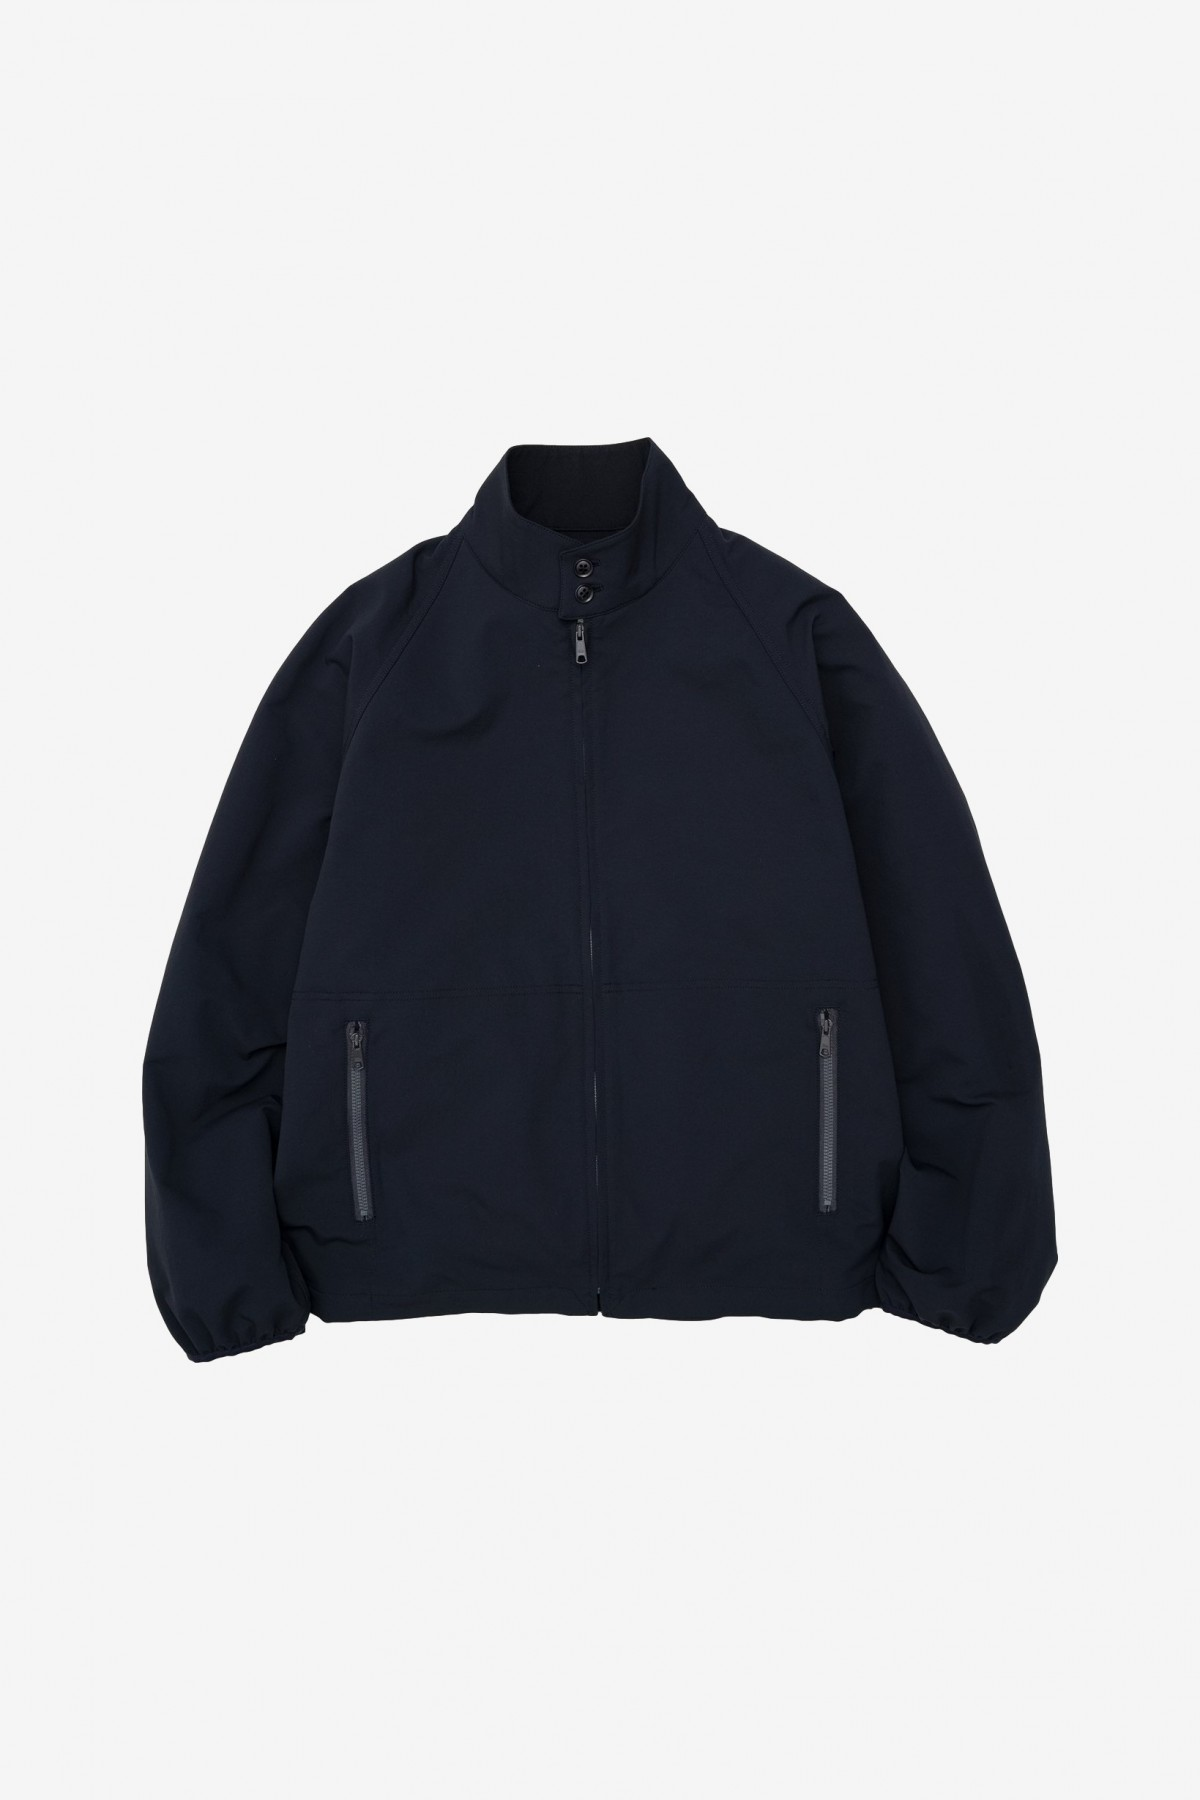 Nanamíca Alphadry Dock Jacket in Dark Navy